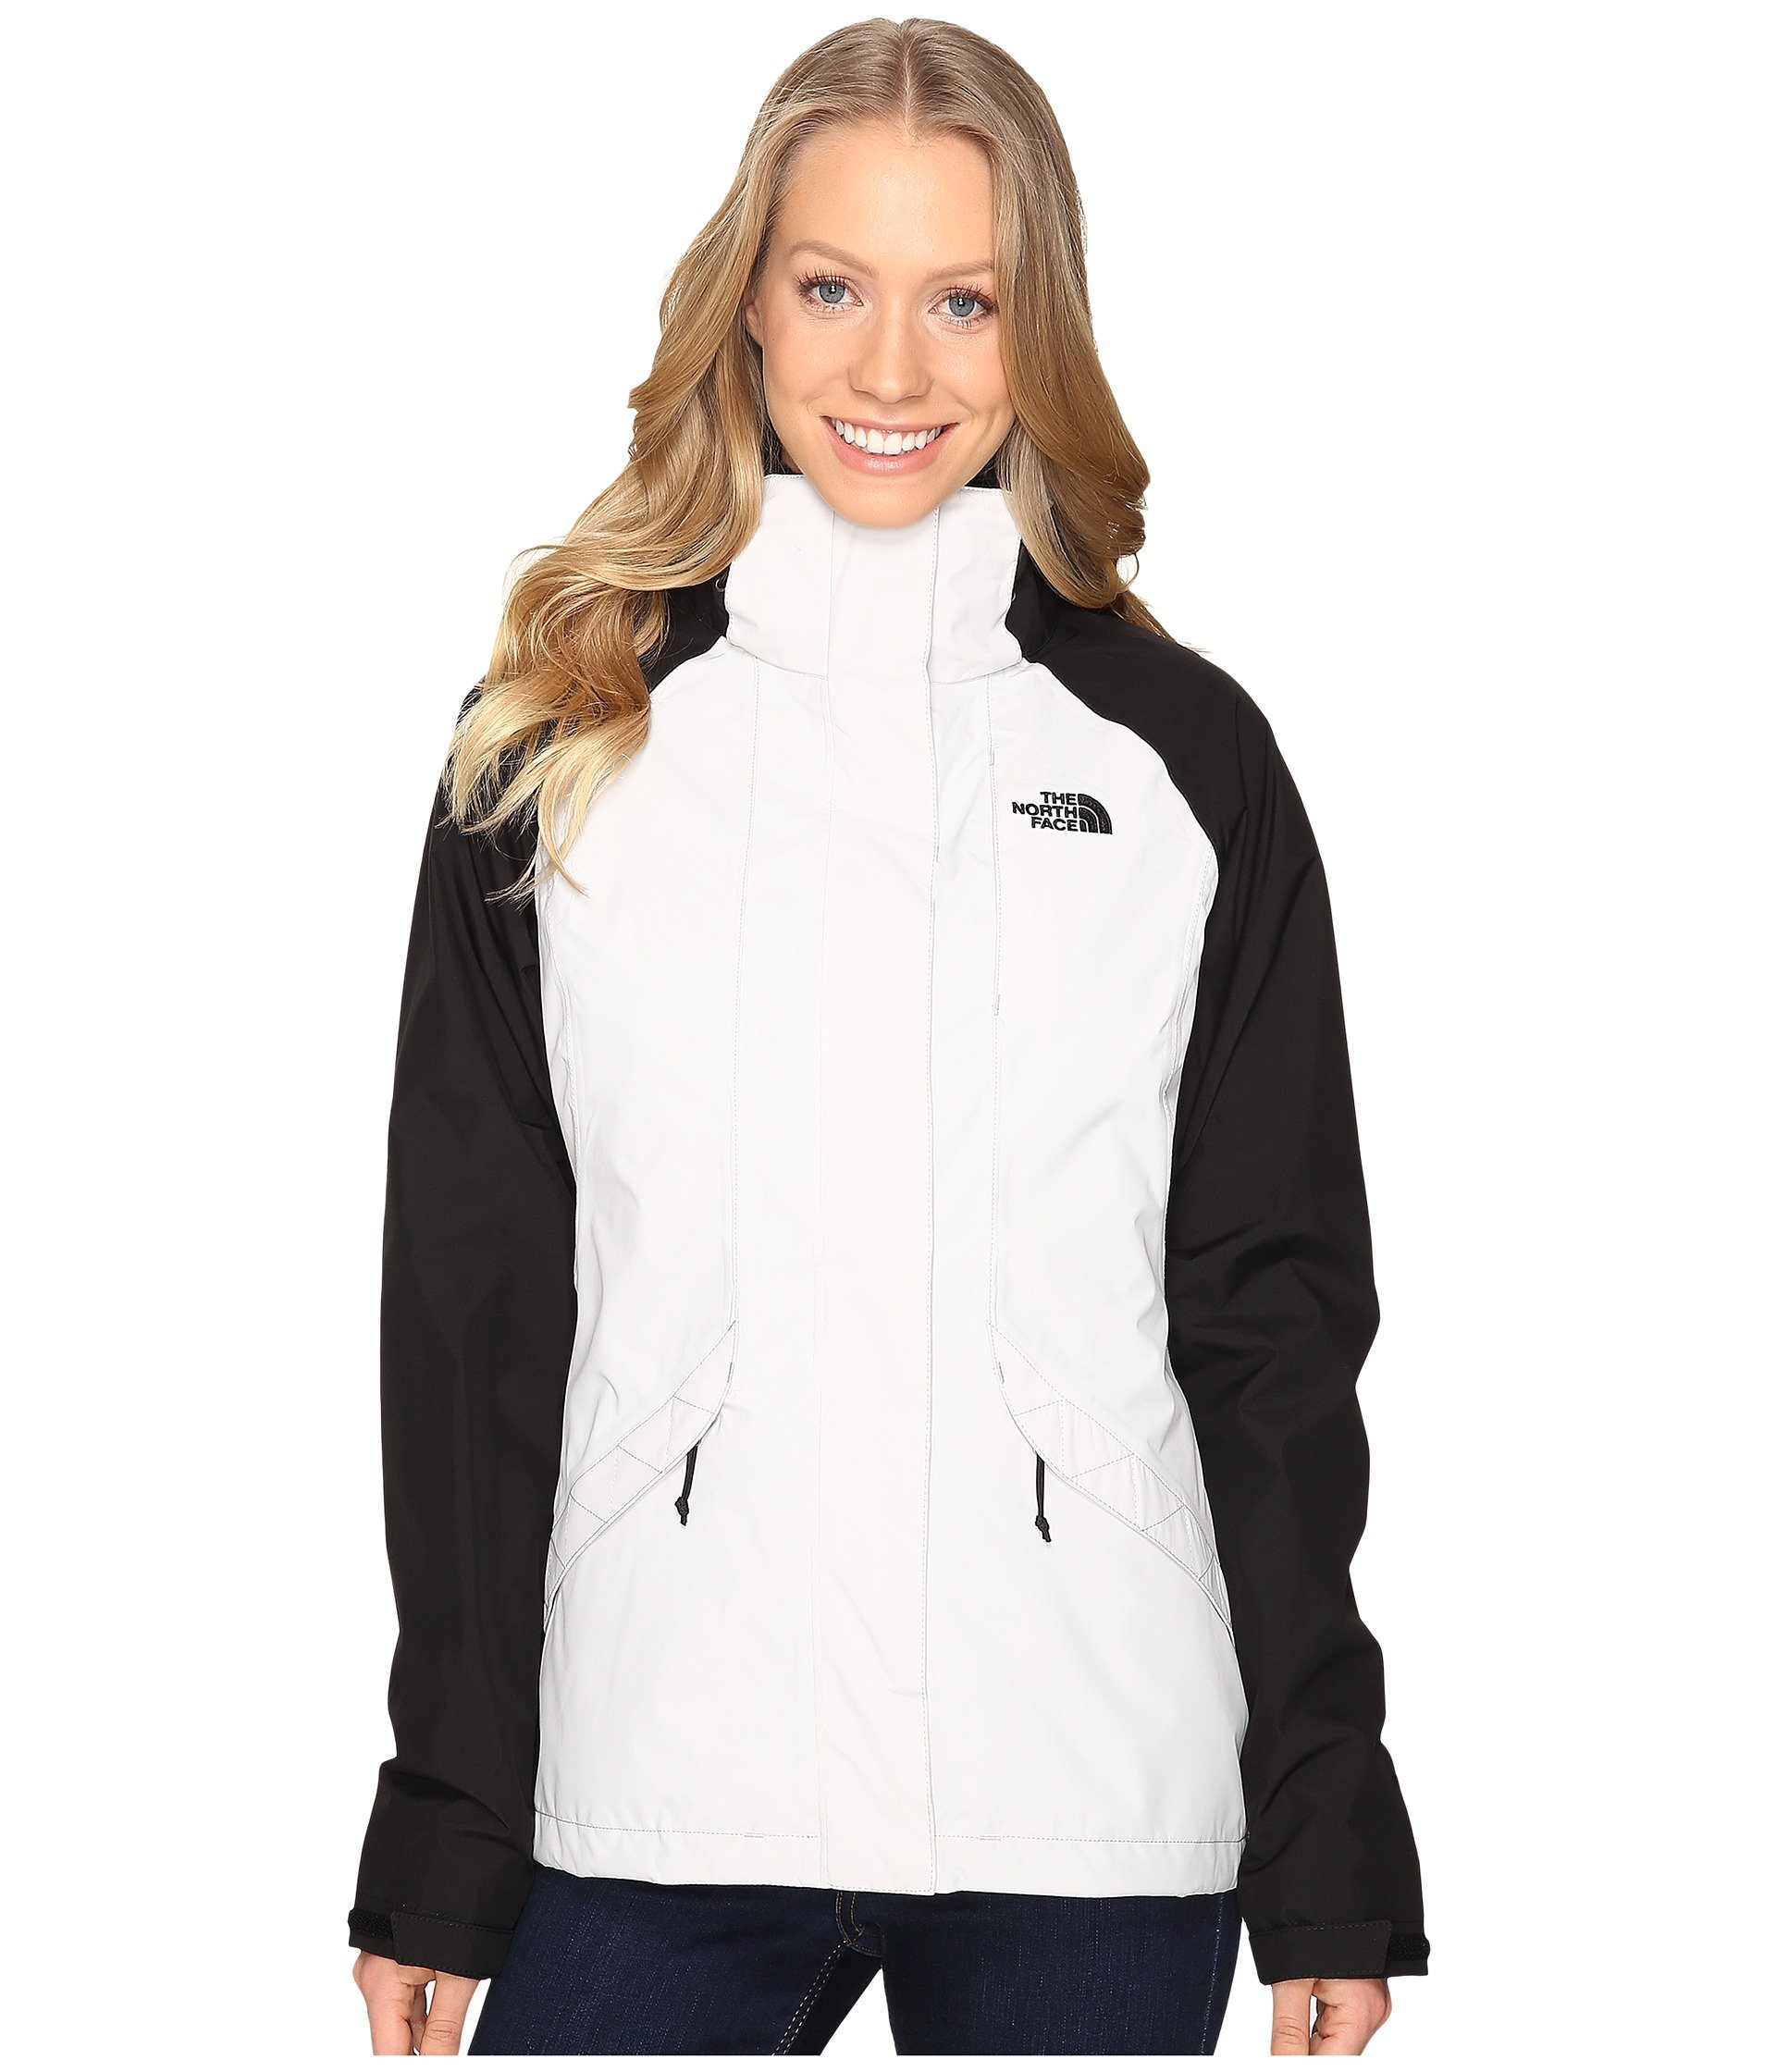 North Face Womens Boundary Triclimate Jacket - Large - Lunar Ice Grey/TNF Black by The North Face (Image #1)